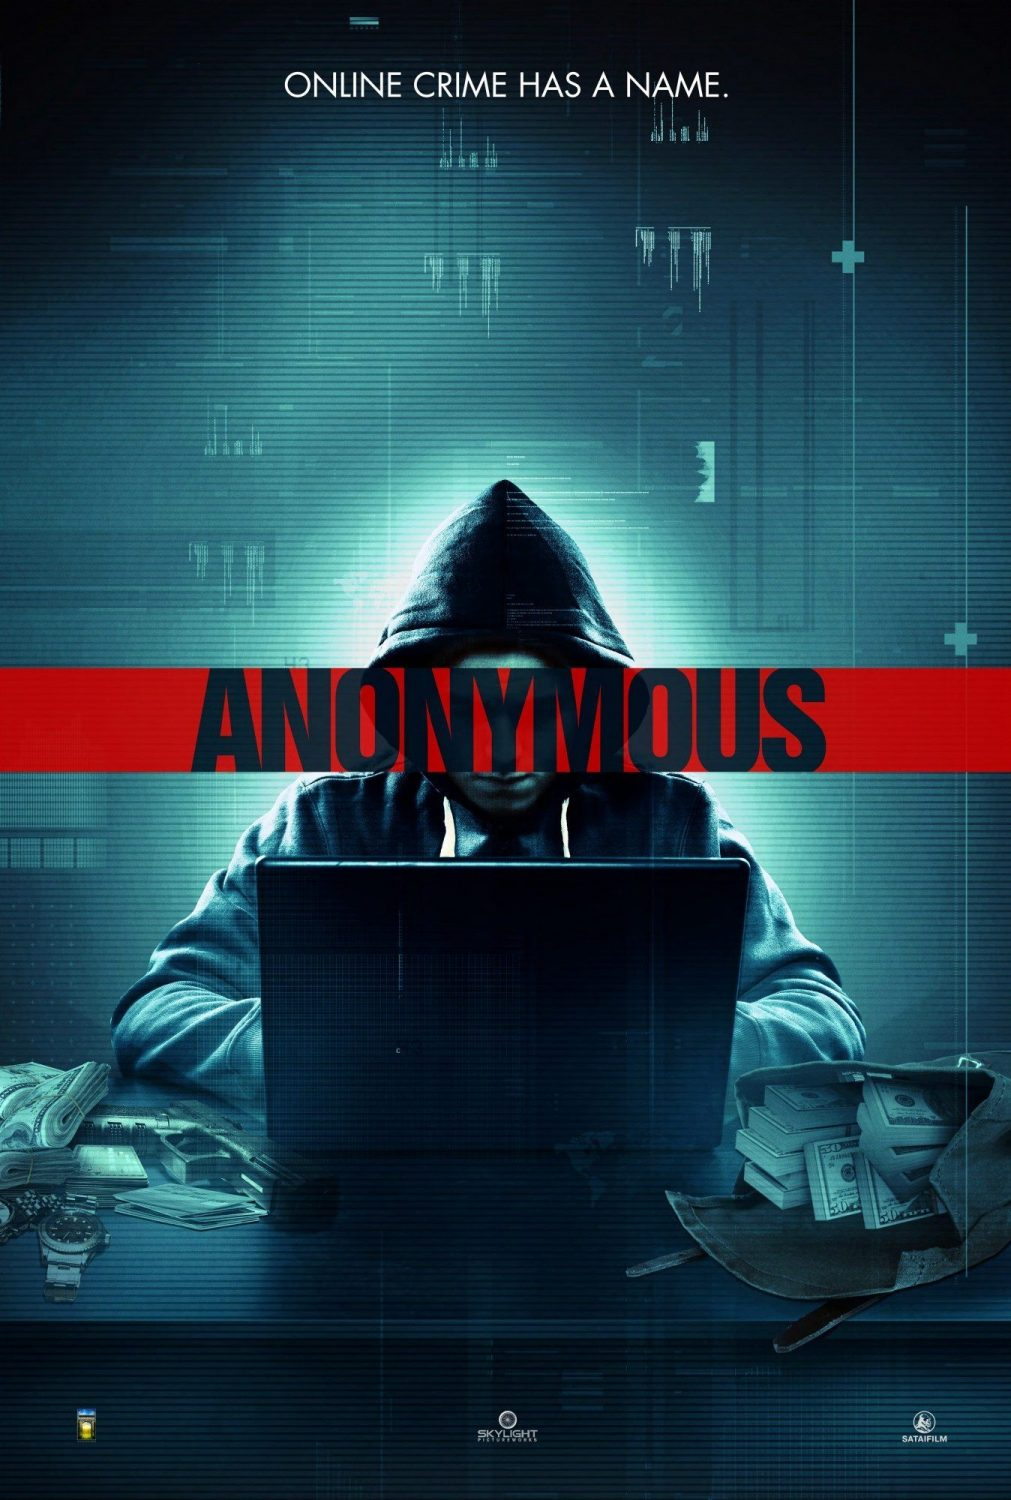 Poster_Anonymous-min